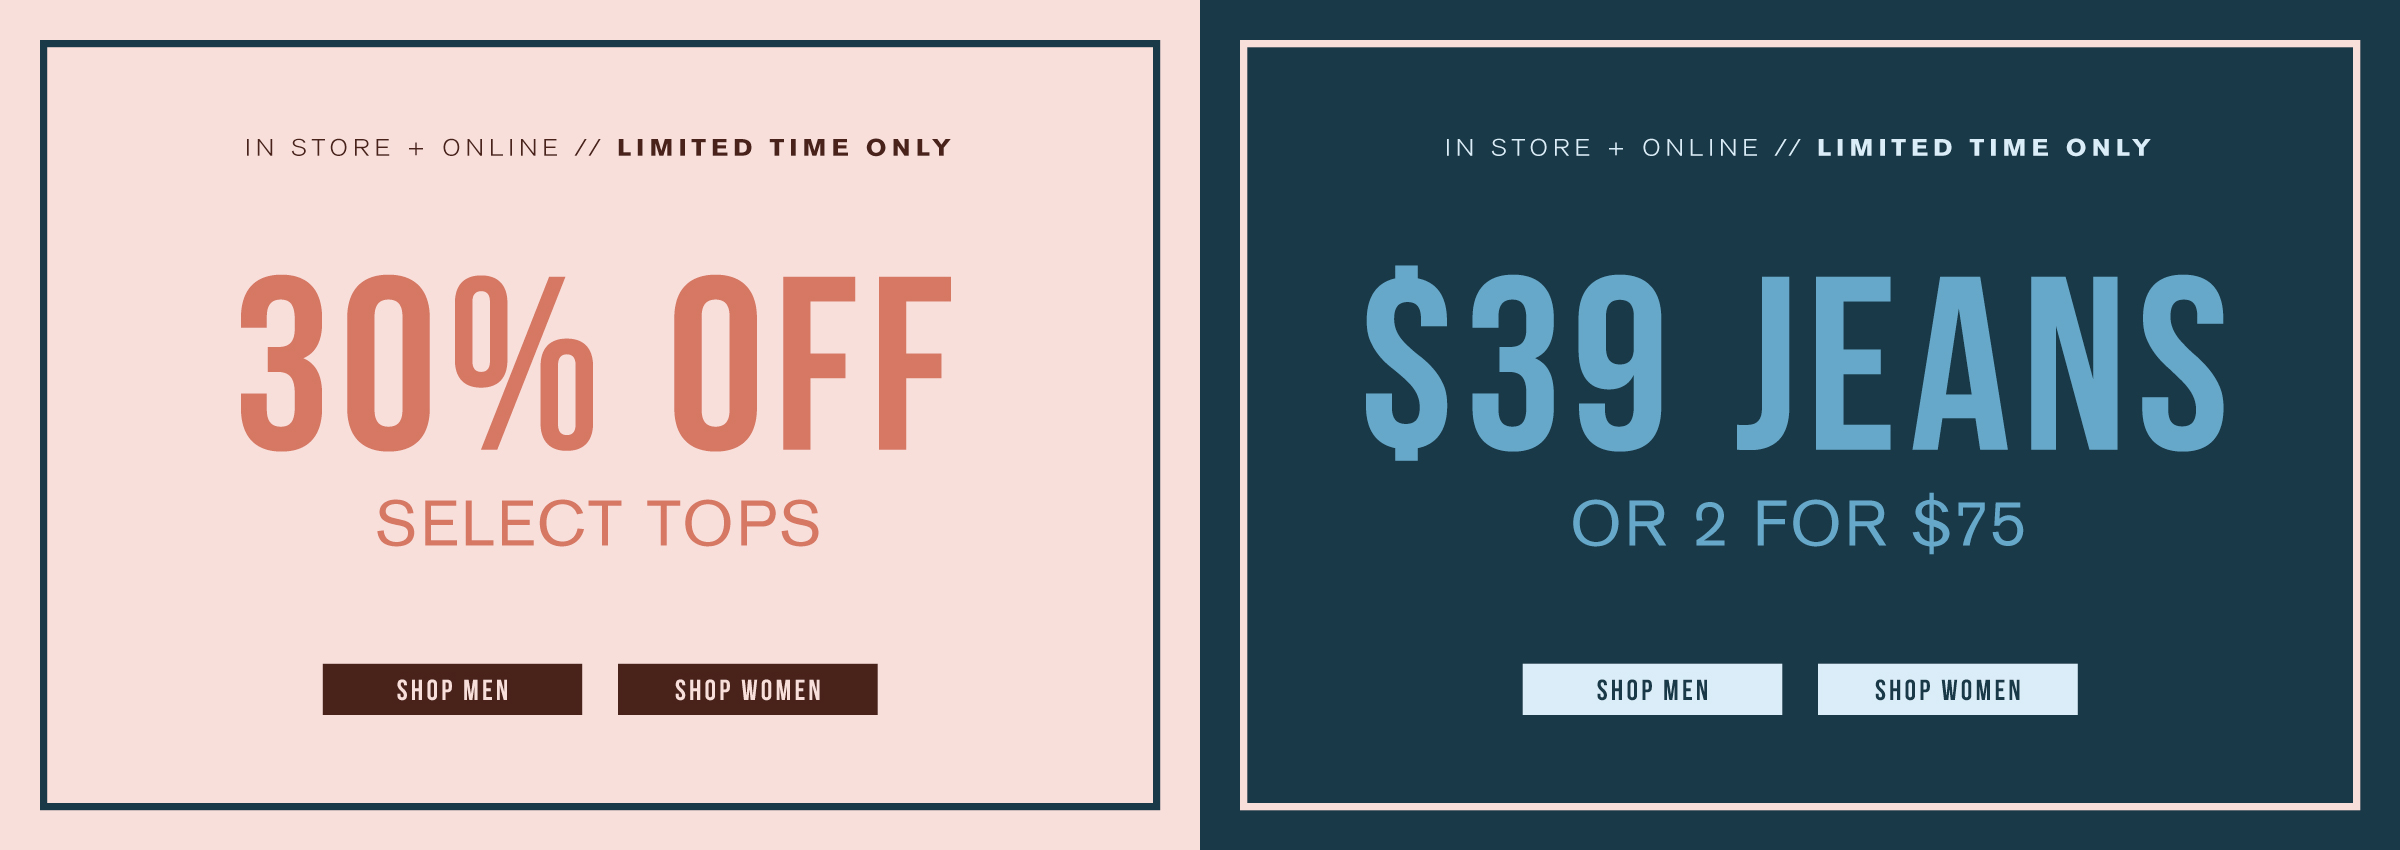 In store + online. Limited time only. Take 30% off select tops. Shop men. Shop women. In store + online. Limited time only. $39 jeans or 2 for $75. Shop men. Shop women.